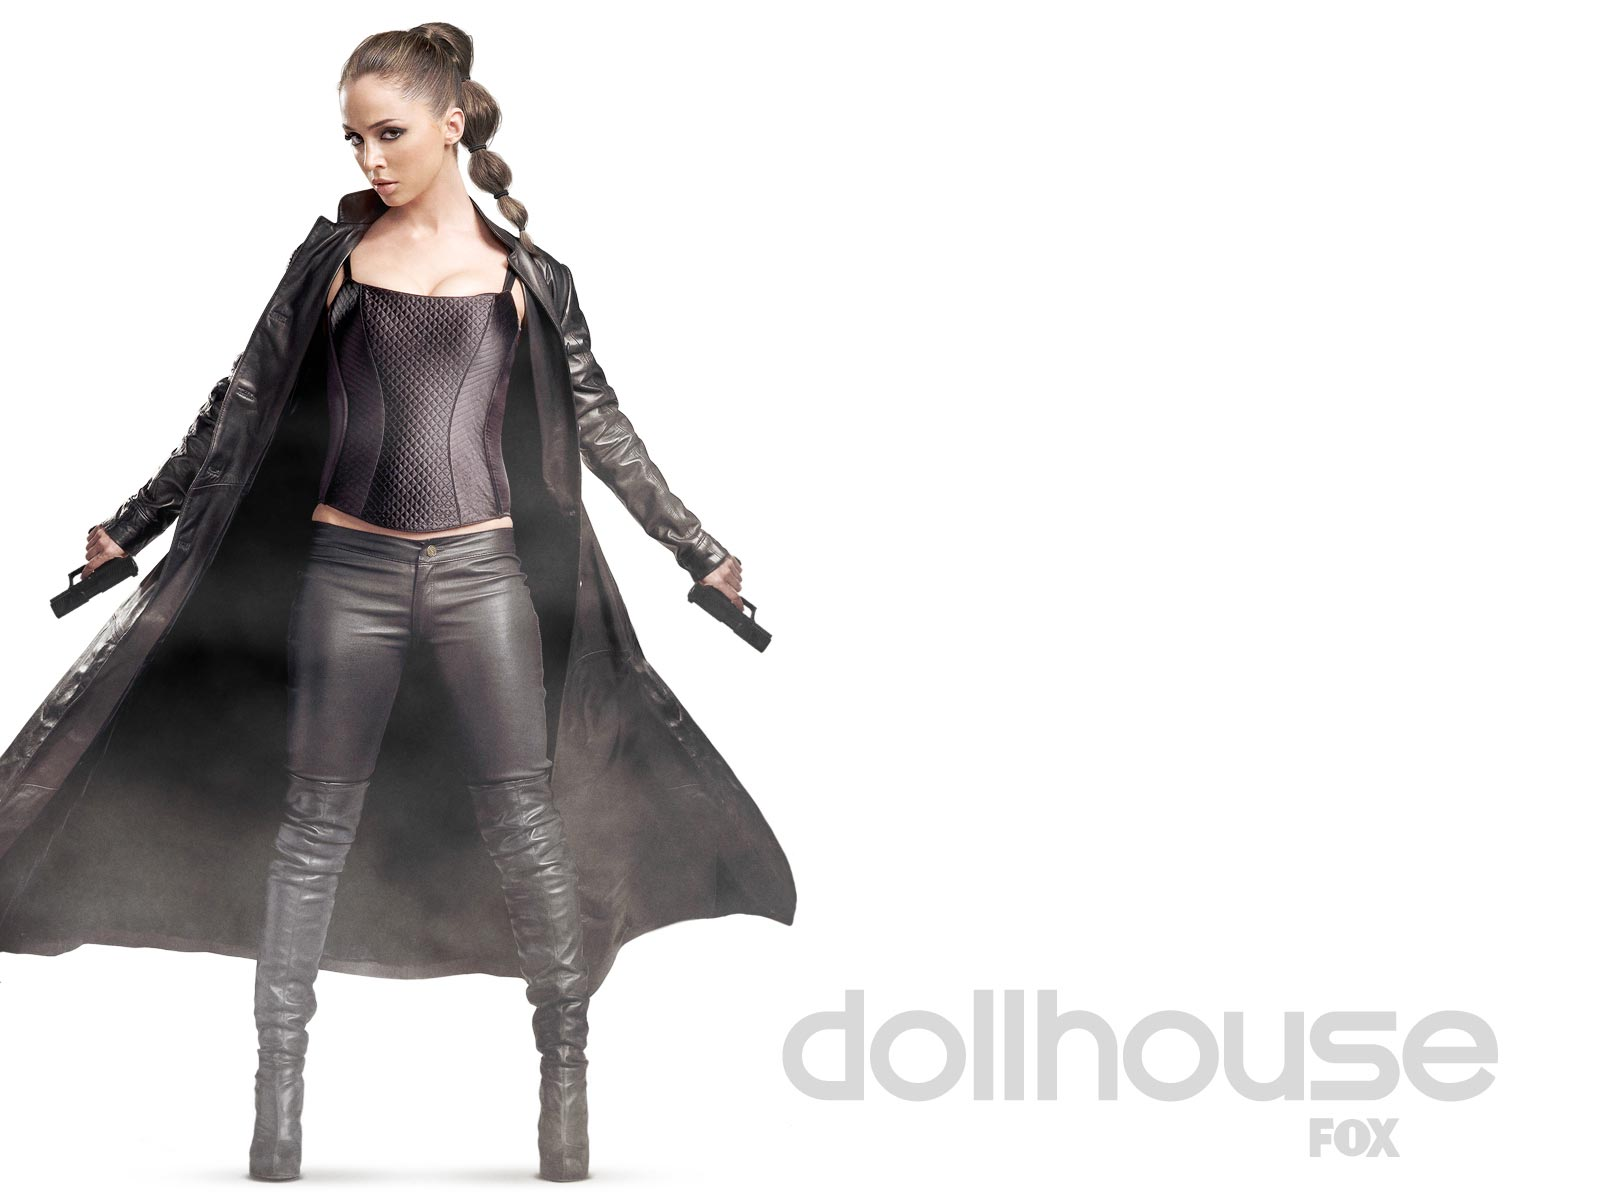 Dollhouse Tv Series Season 2 Wallpapers High Quality Artworks